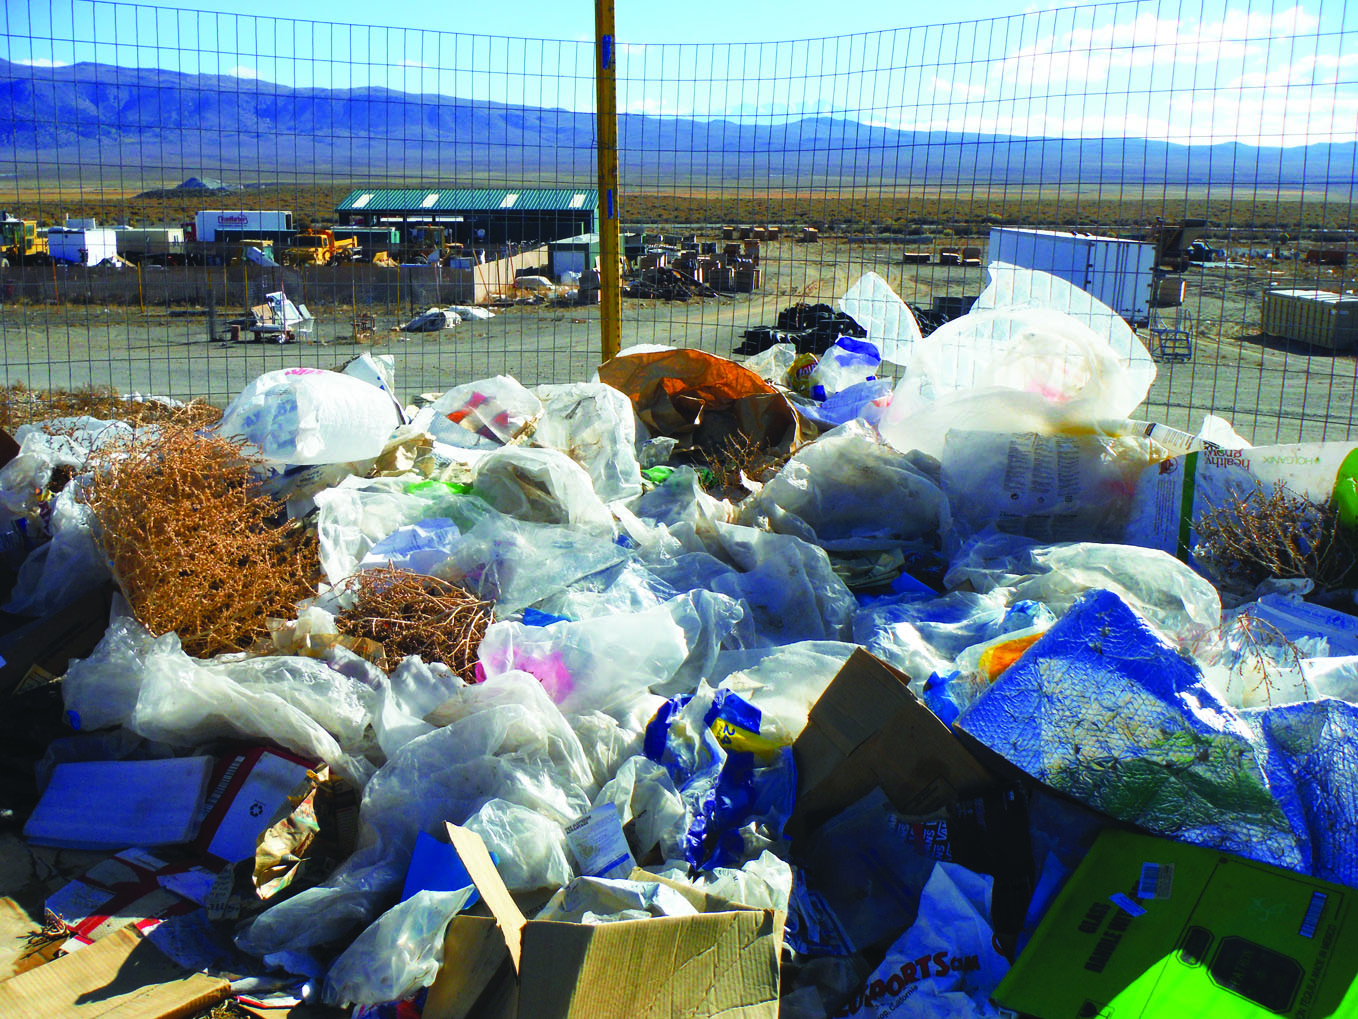 Plastic bags at the Benton Crossing Landfill. Photo courtesy: Mike Bodine.